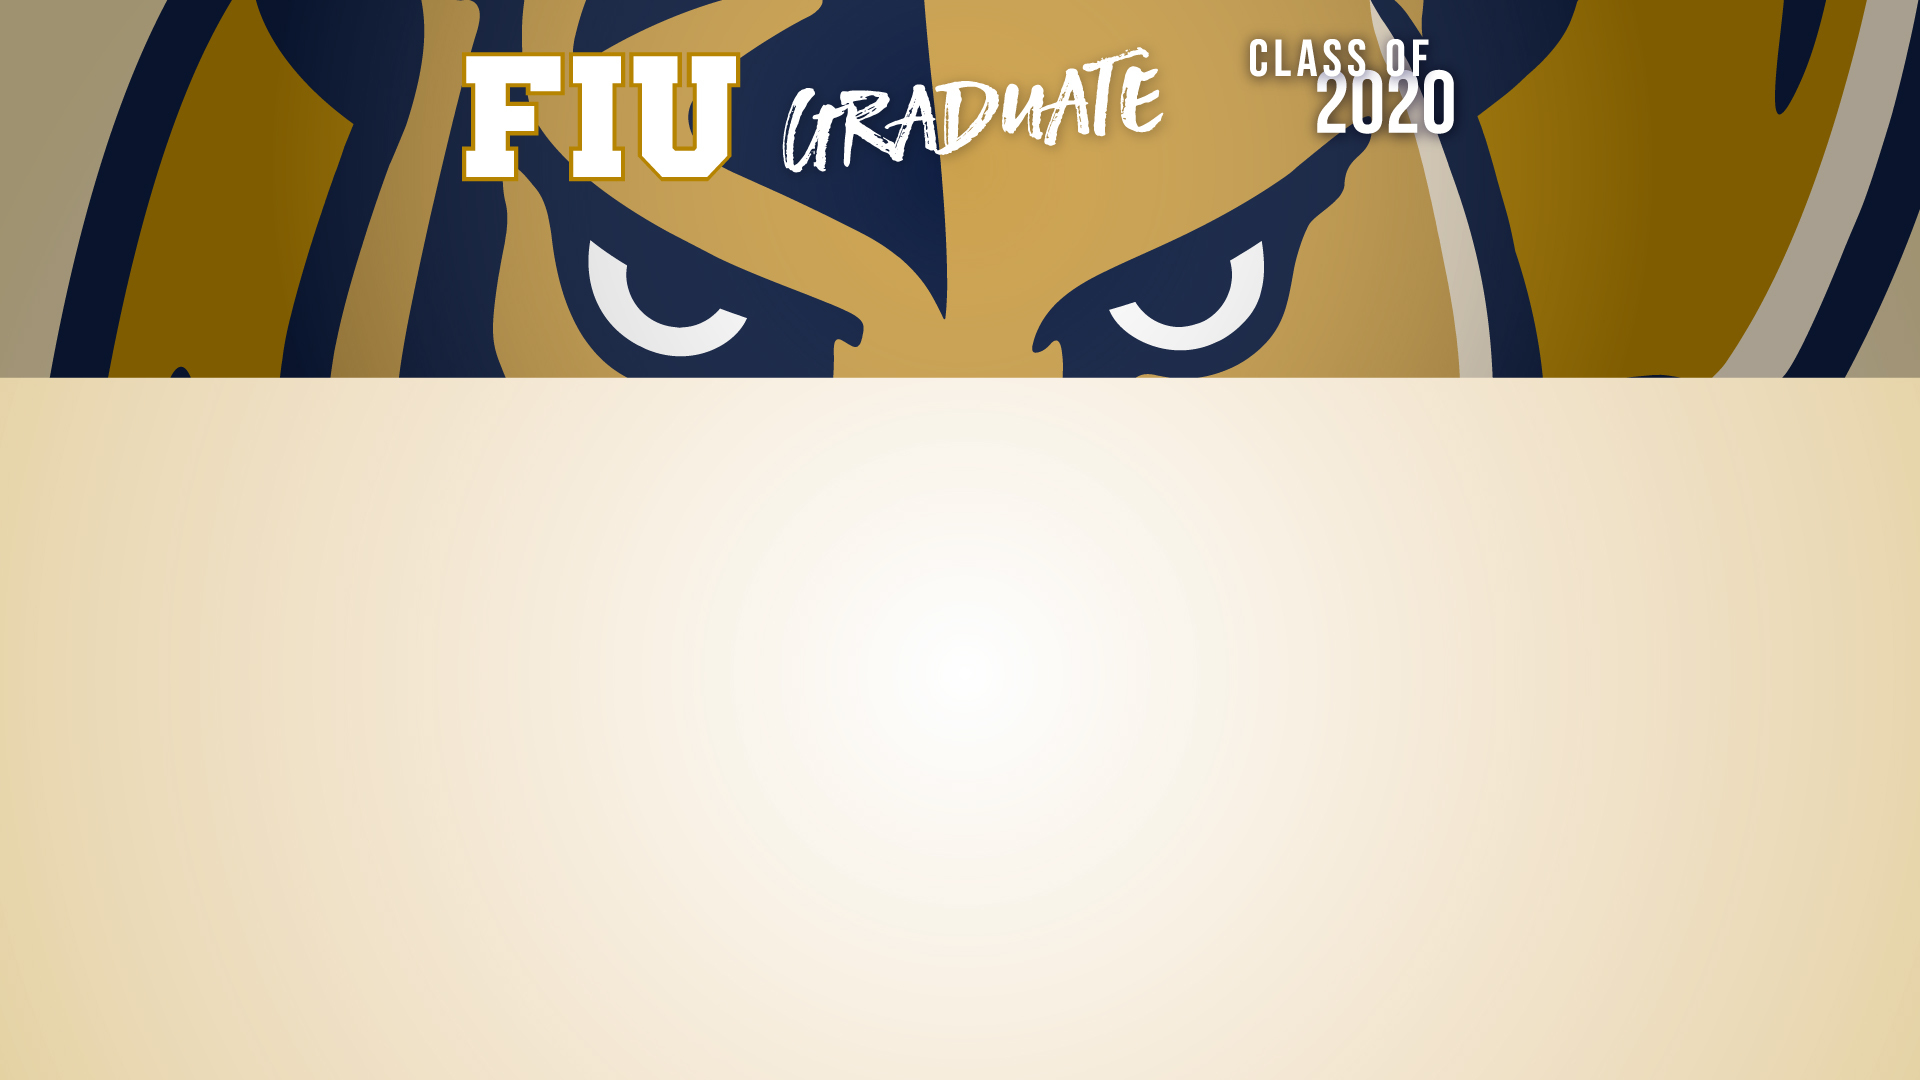 FIU Grad 2020 Gold Zoom Background